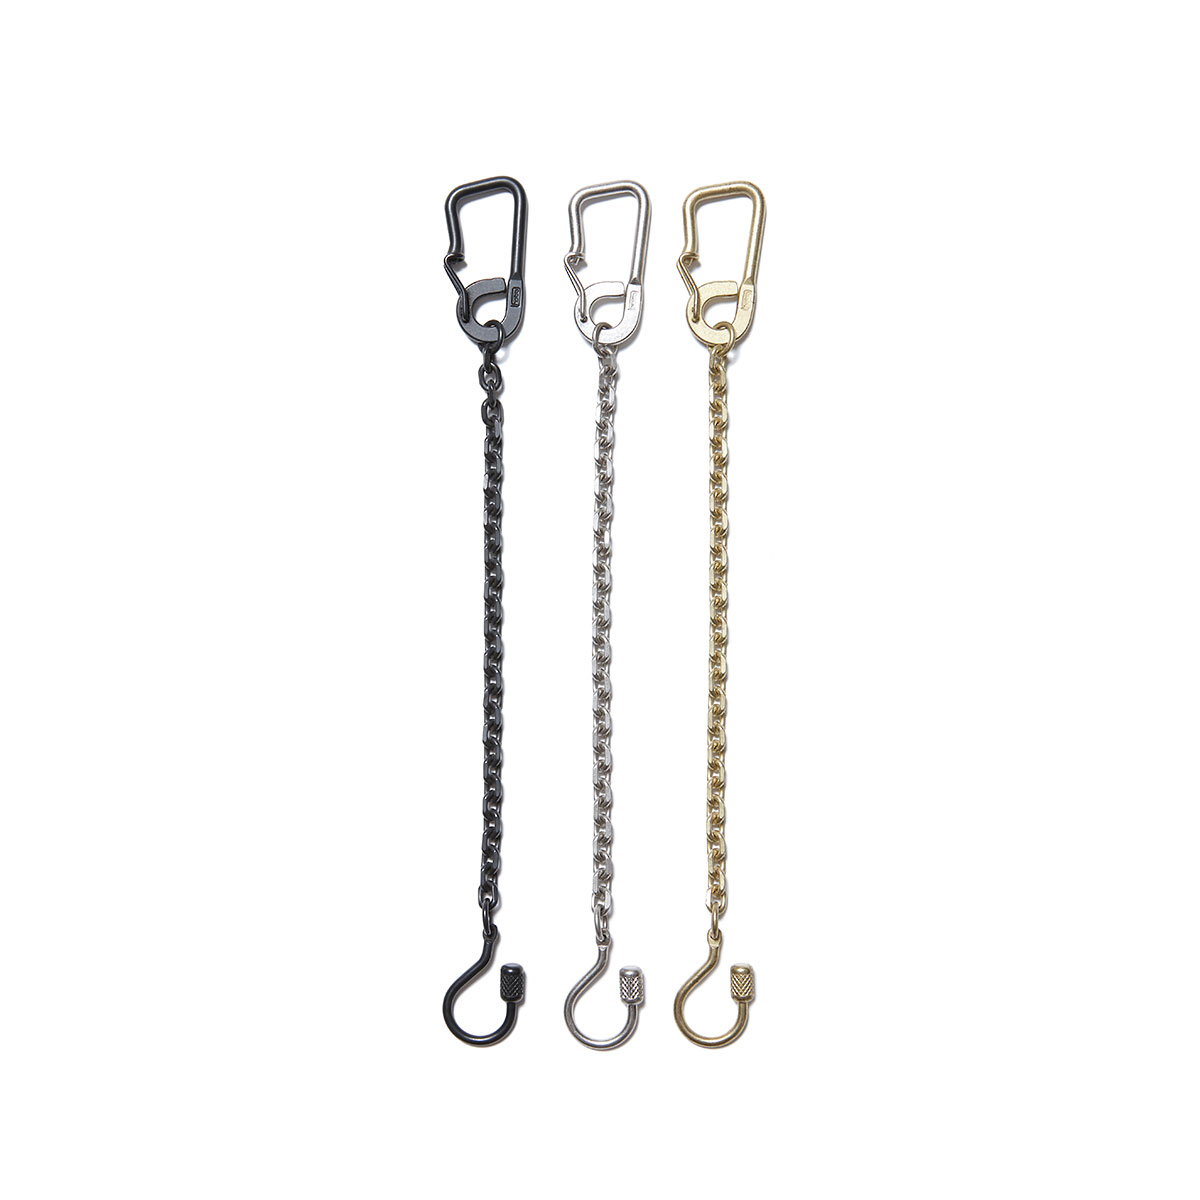 HOBO / BRASS CARABINER KEY RING with CHAIN